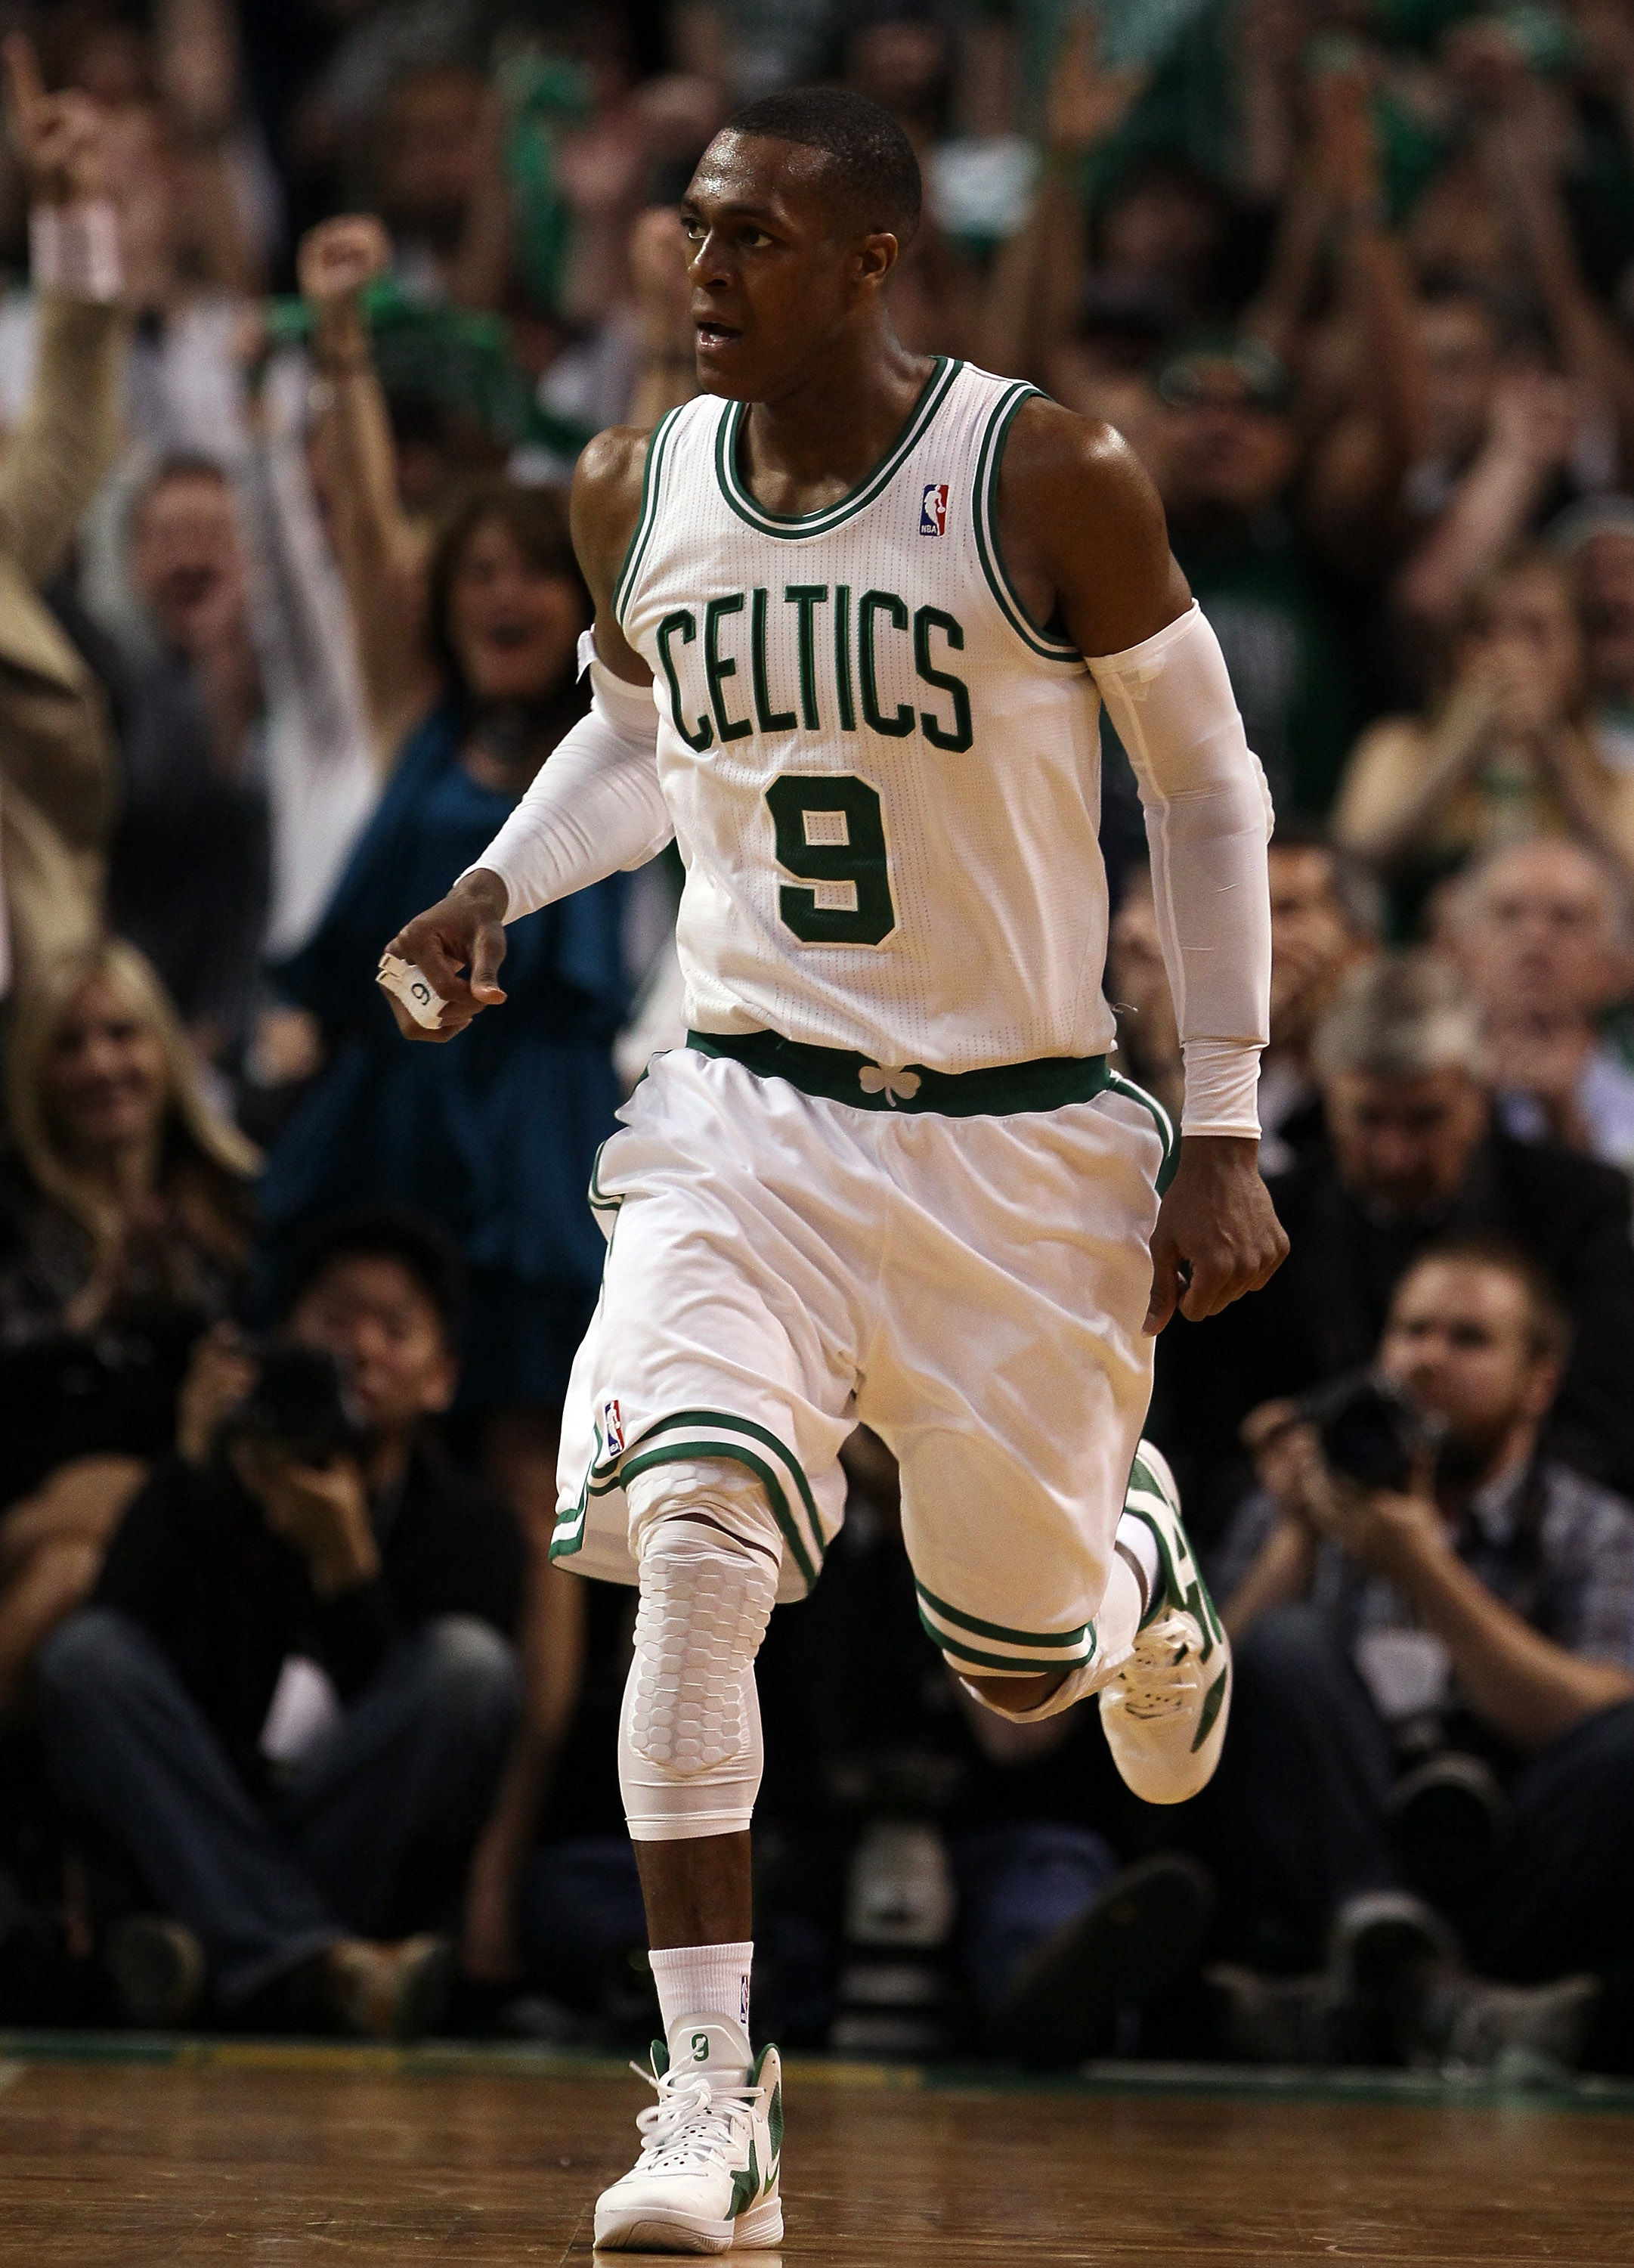 BOSTON, MA - MAY 07: Rajon Rondo #9 of the Boston Celtics heads down court after he scored on a break away in the second half against the Miami Heat in Game Three of the Eastern Conference Semifinals in the 2011 NBA Playoffs on May 7, 2011 at the TD Garde